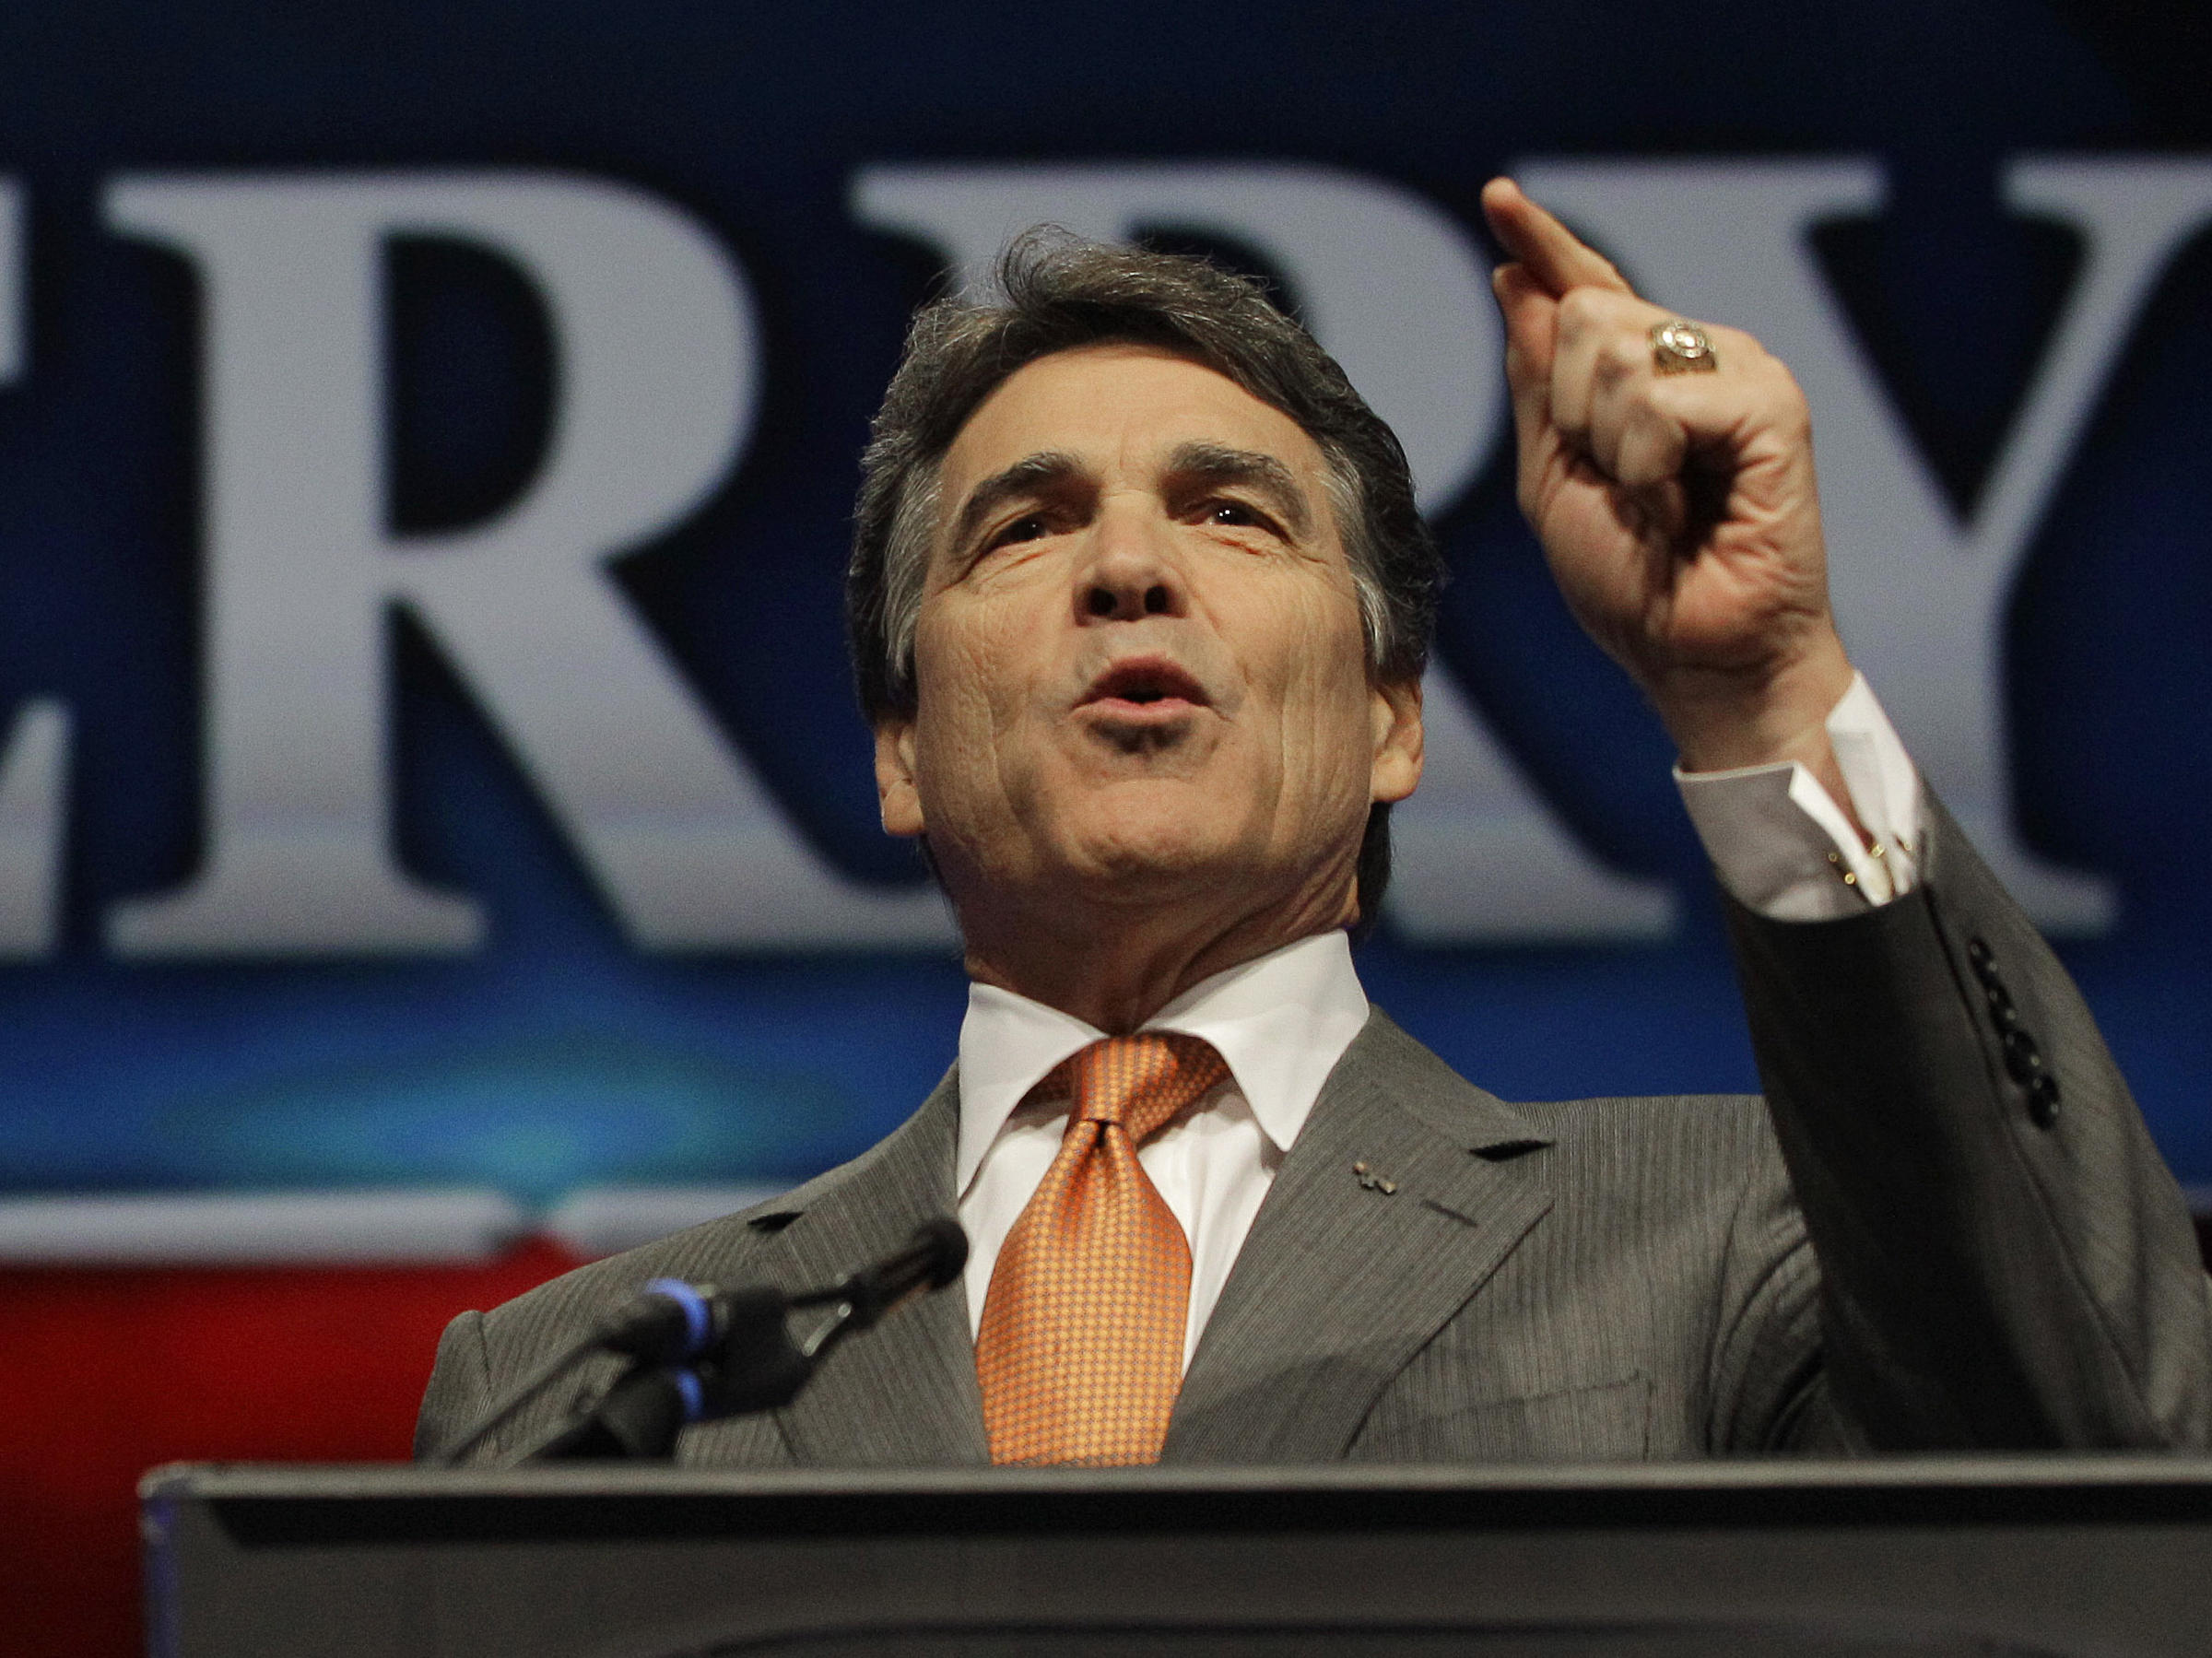 essay on governor rick perry job performance Rick perry currently serves as the 14th united states texas became a national leader for job energygov resources budget & performance.